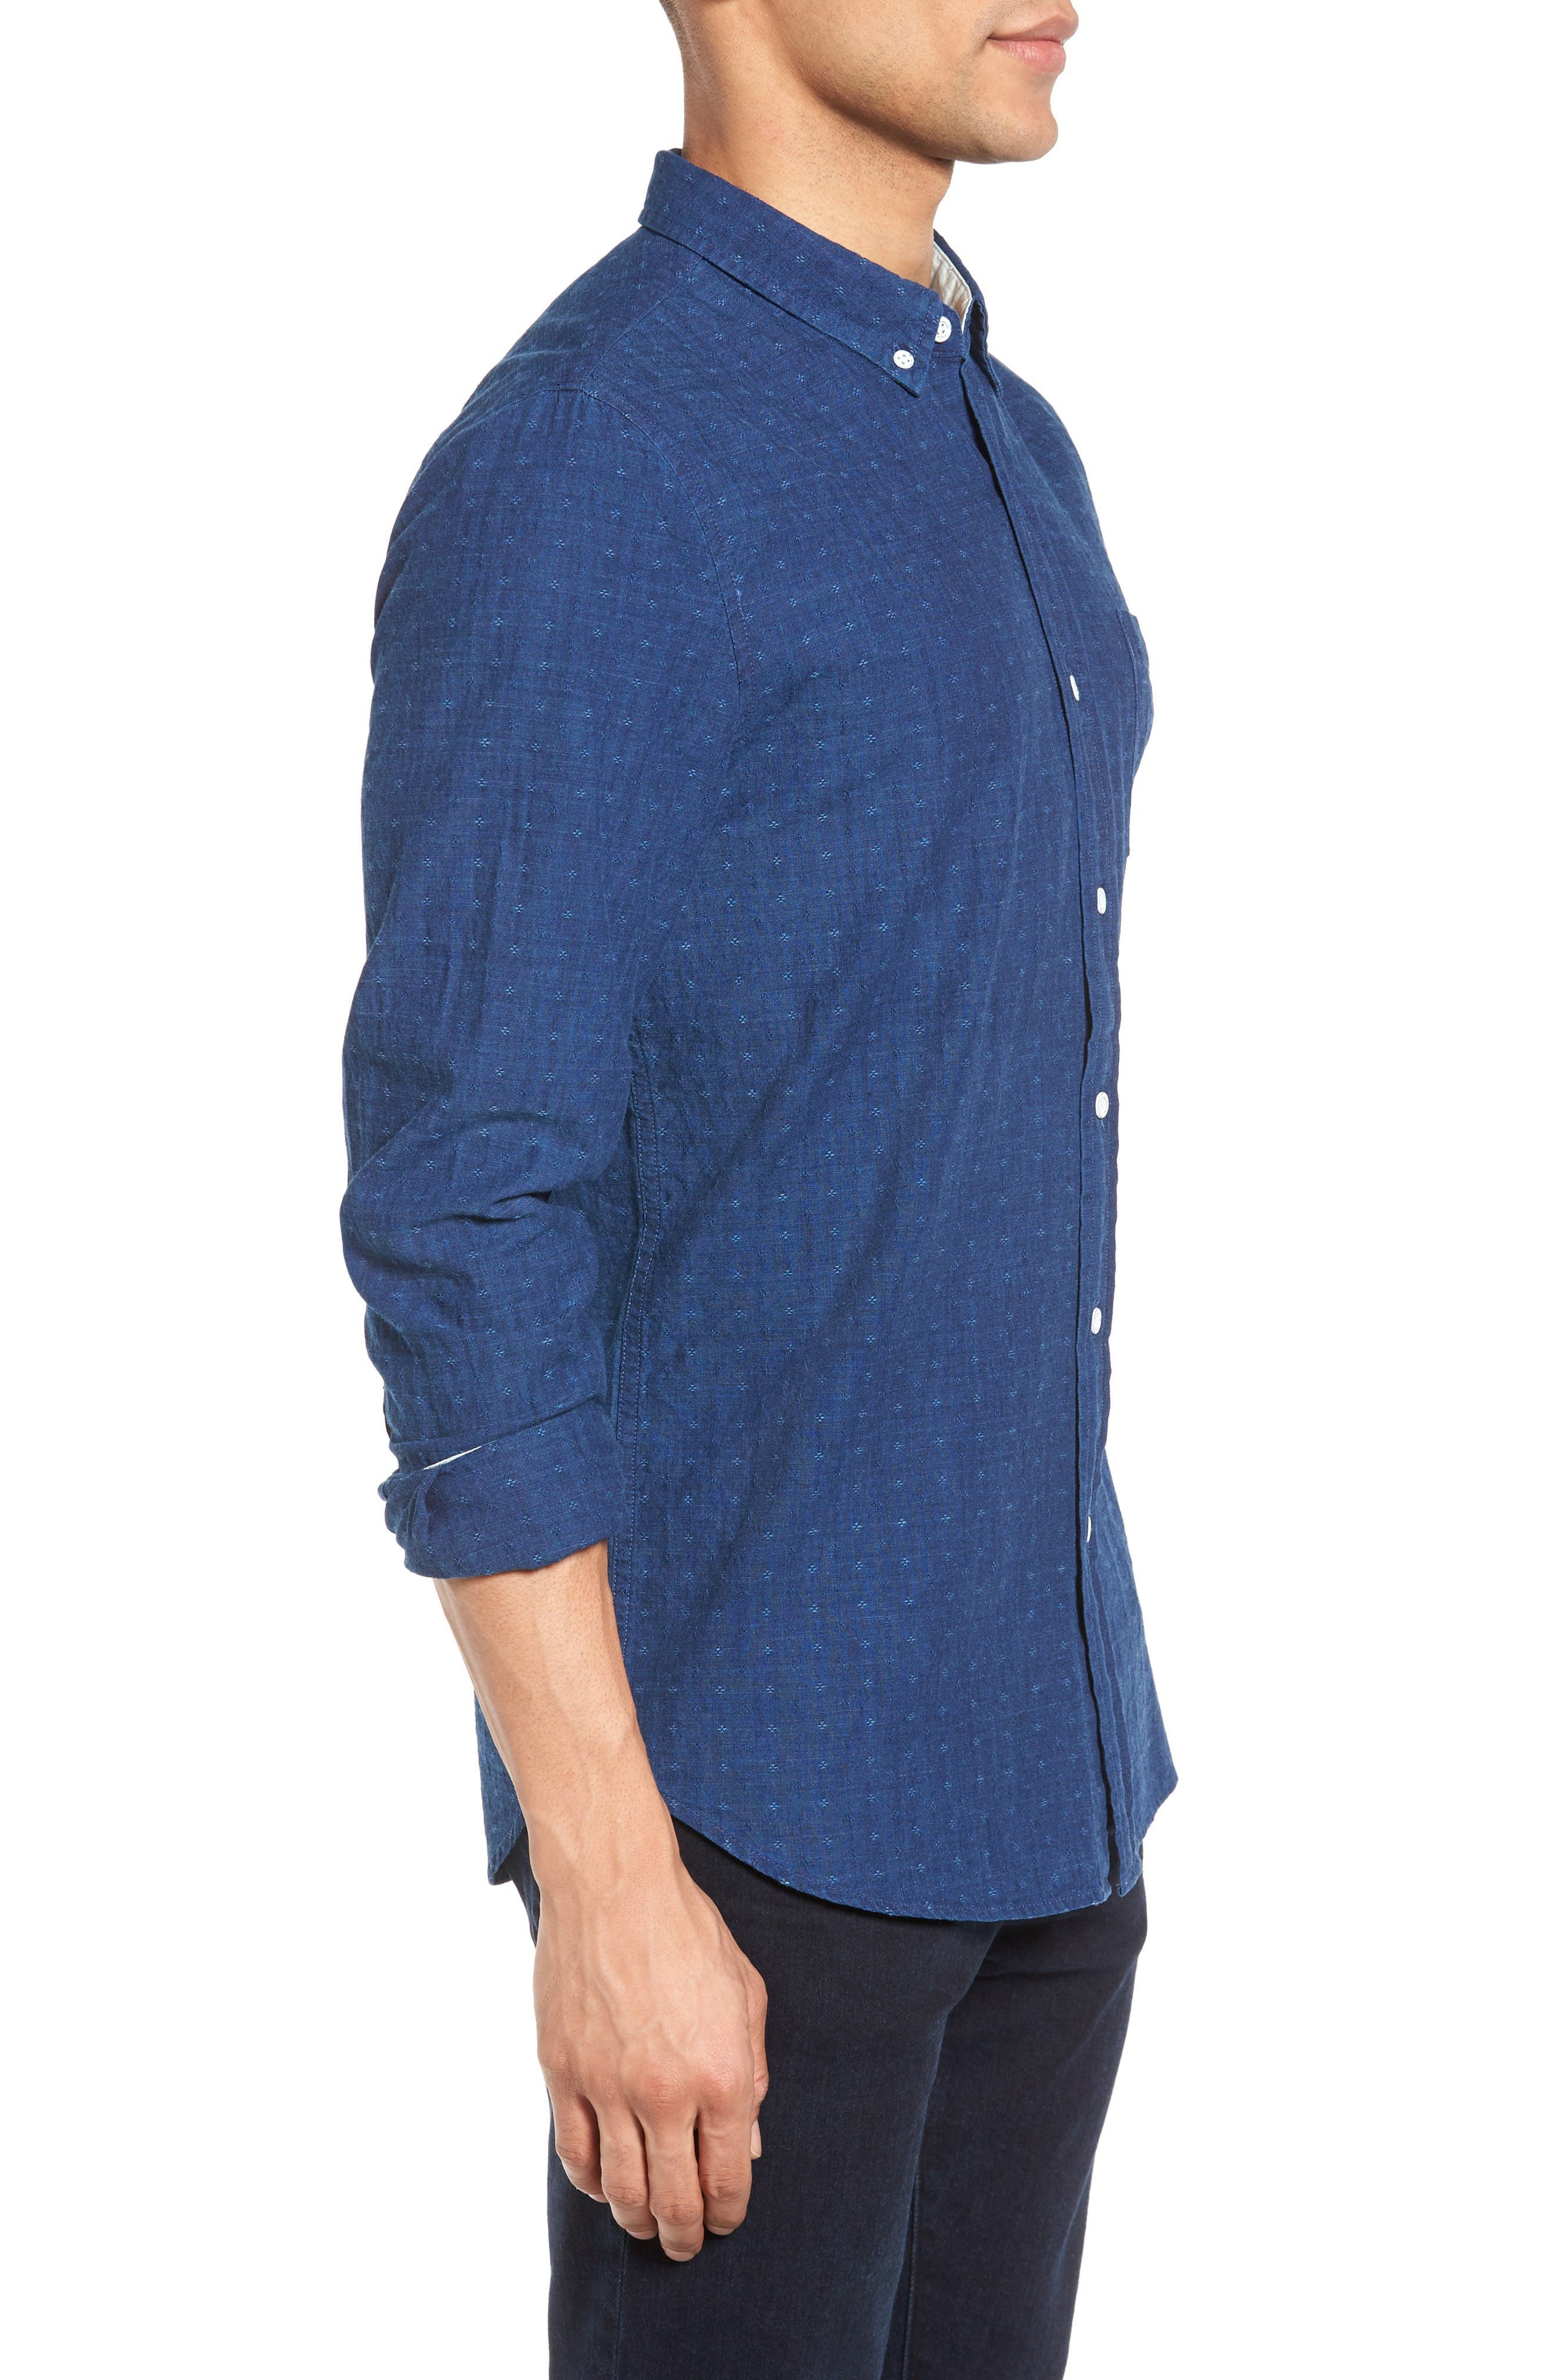 Grady Trim Fit Jacquard Sport Shirt,                             Alternate thumbnail 3, color,                             Washed Indigo